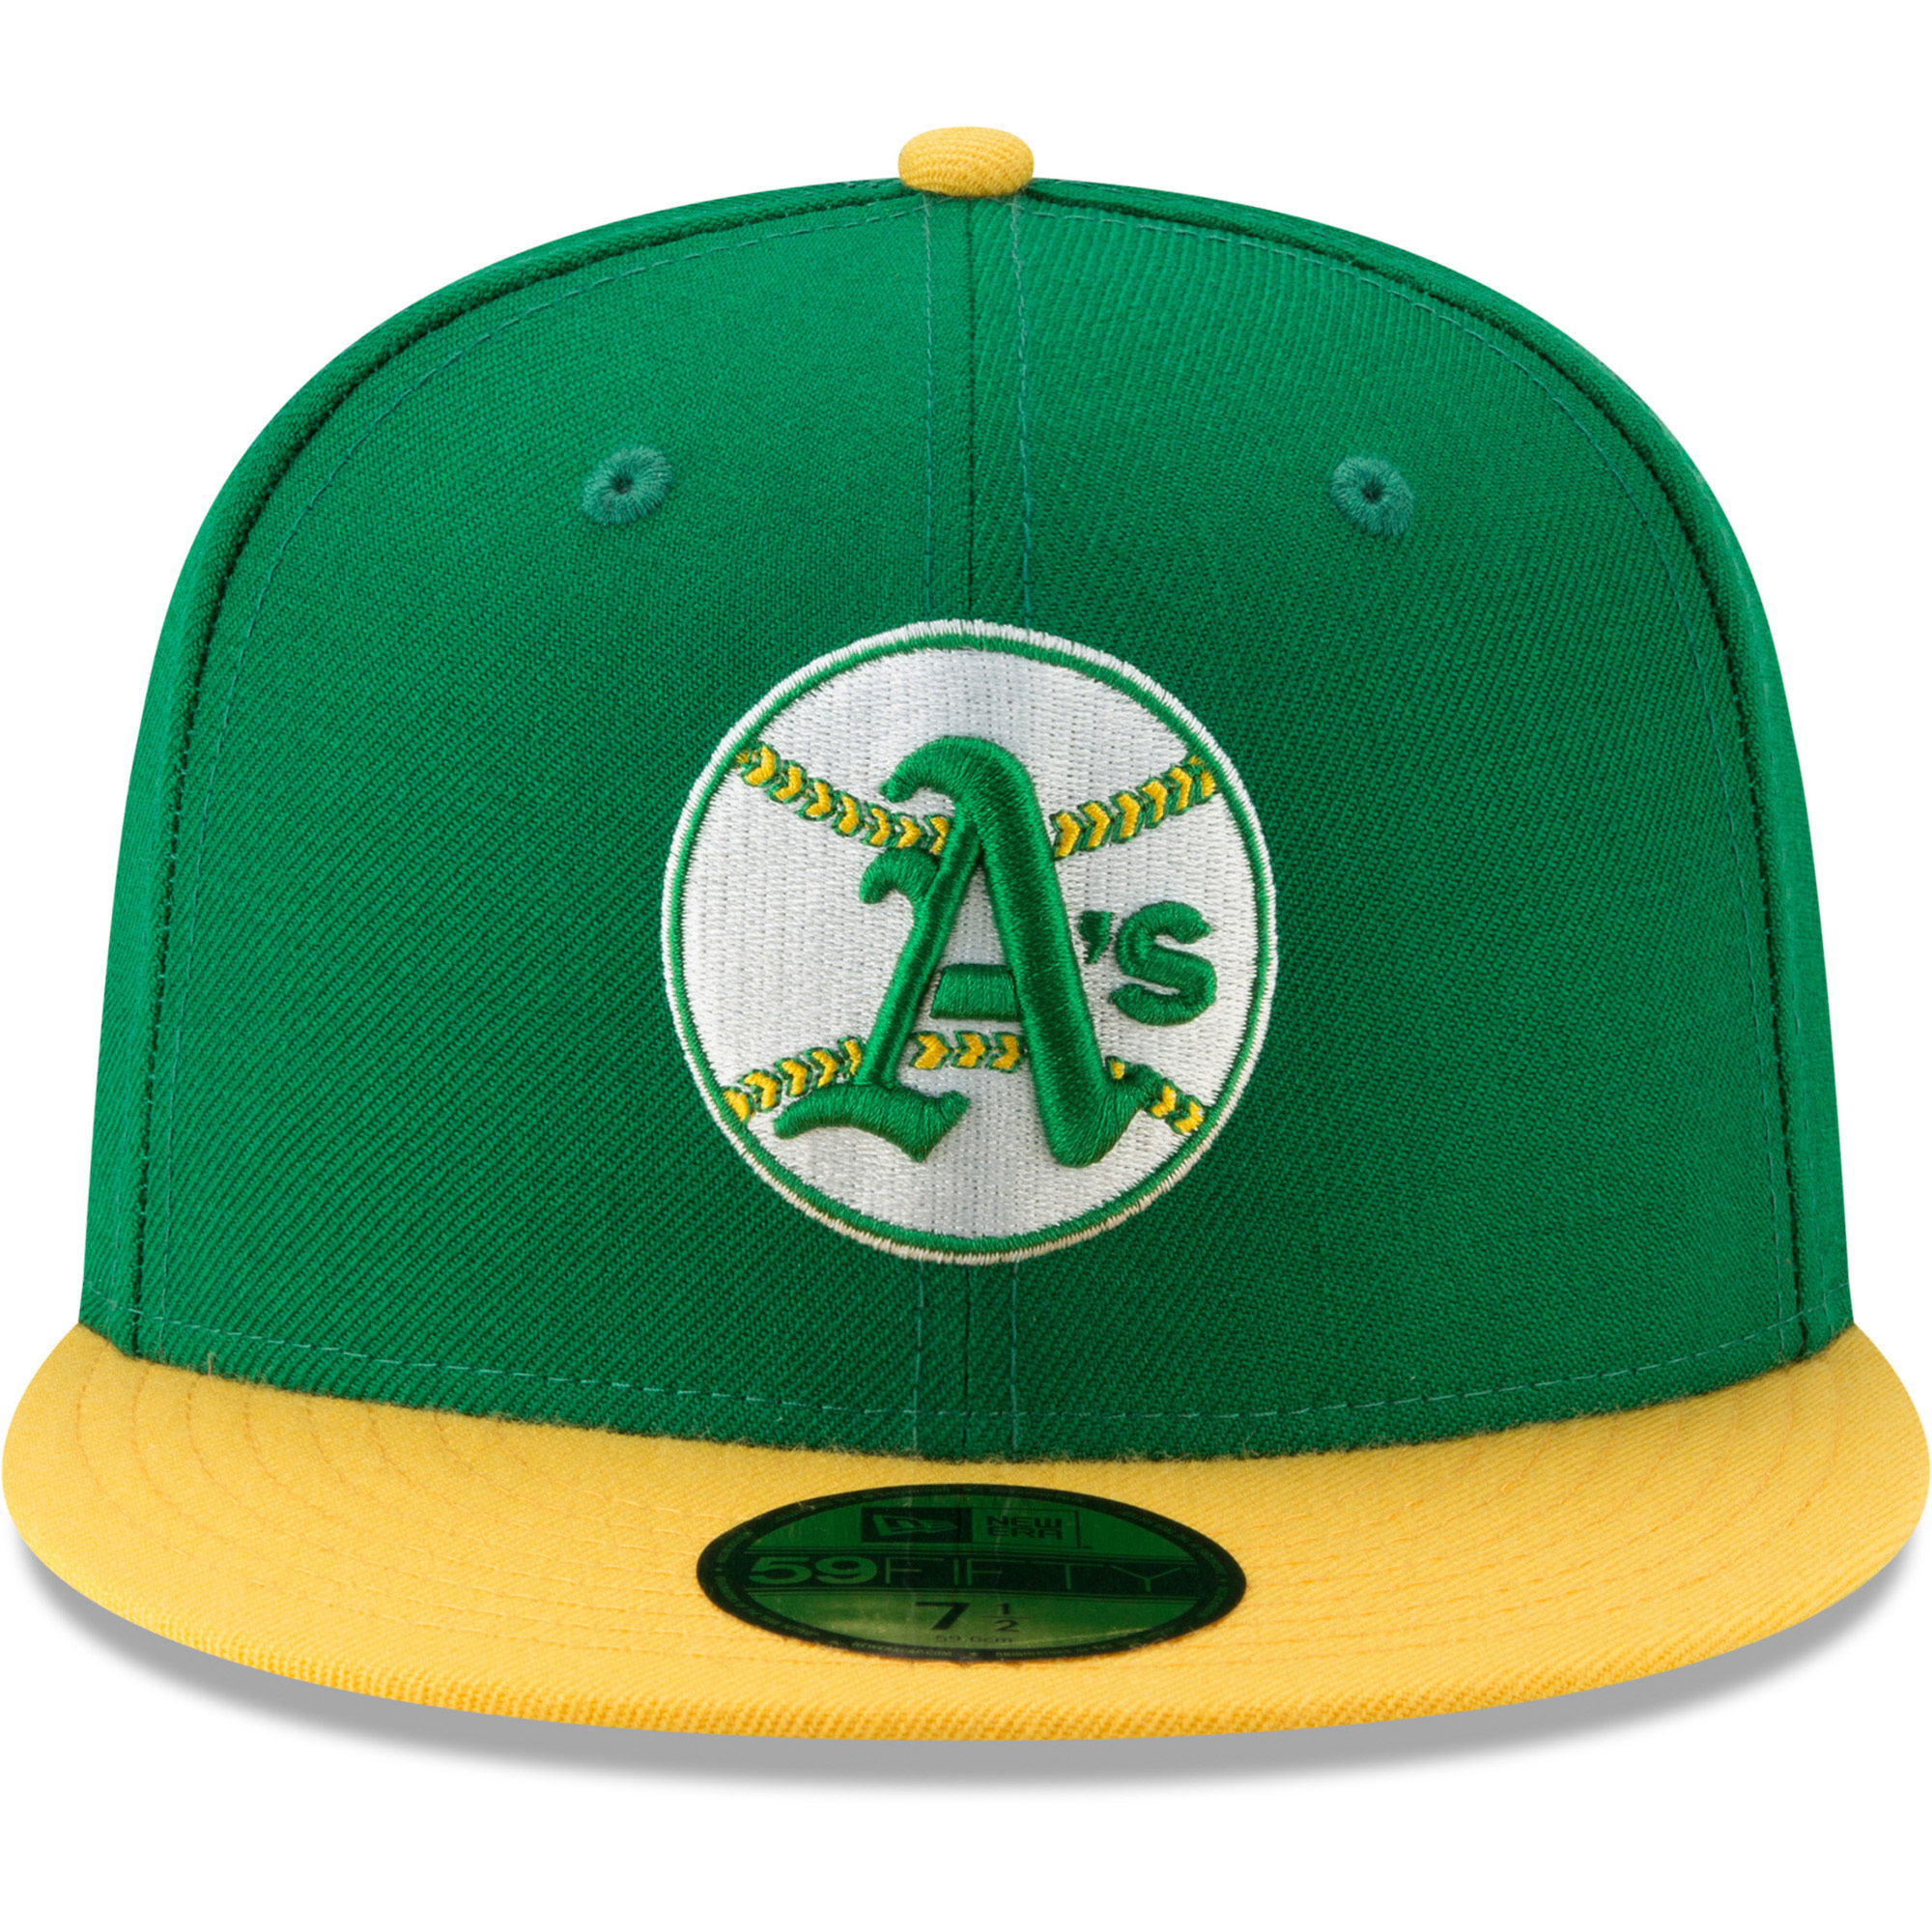 on sale 5e7bc cf187 Oakland Athletics New Era Cooperstown Collection Alt Logo Pack 59FIFTY  Fitted Hat - Green - Walmart.com